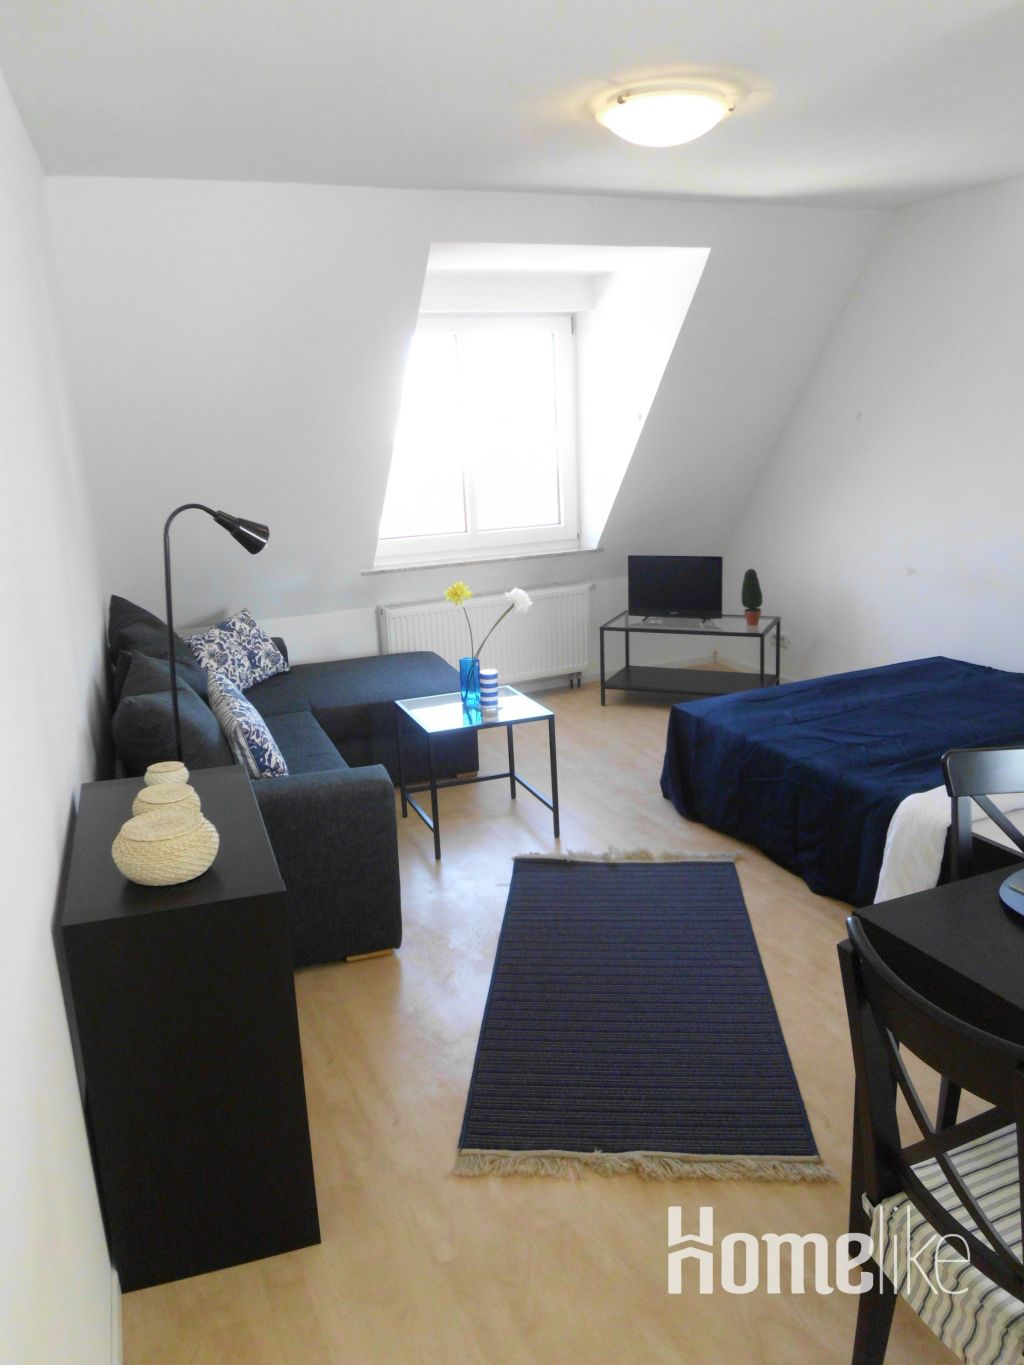 image 3 furnished 1 bedroom Apartment for rent in Barth, Nordvorpommern